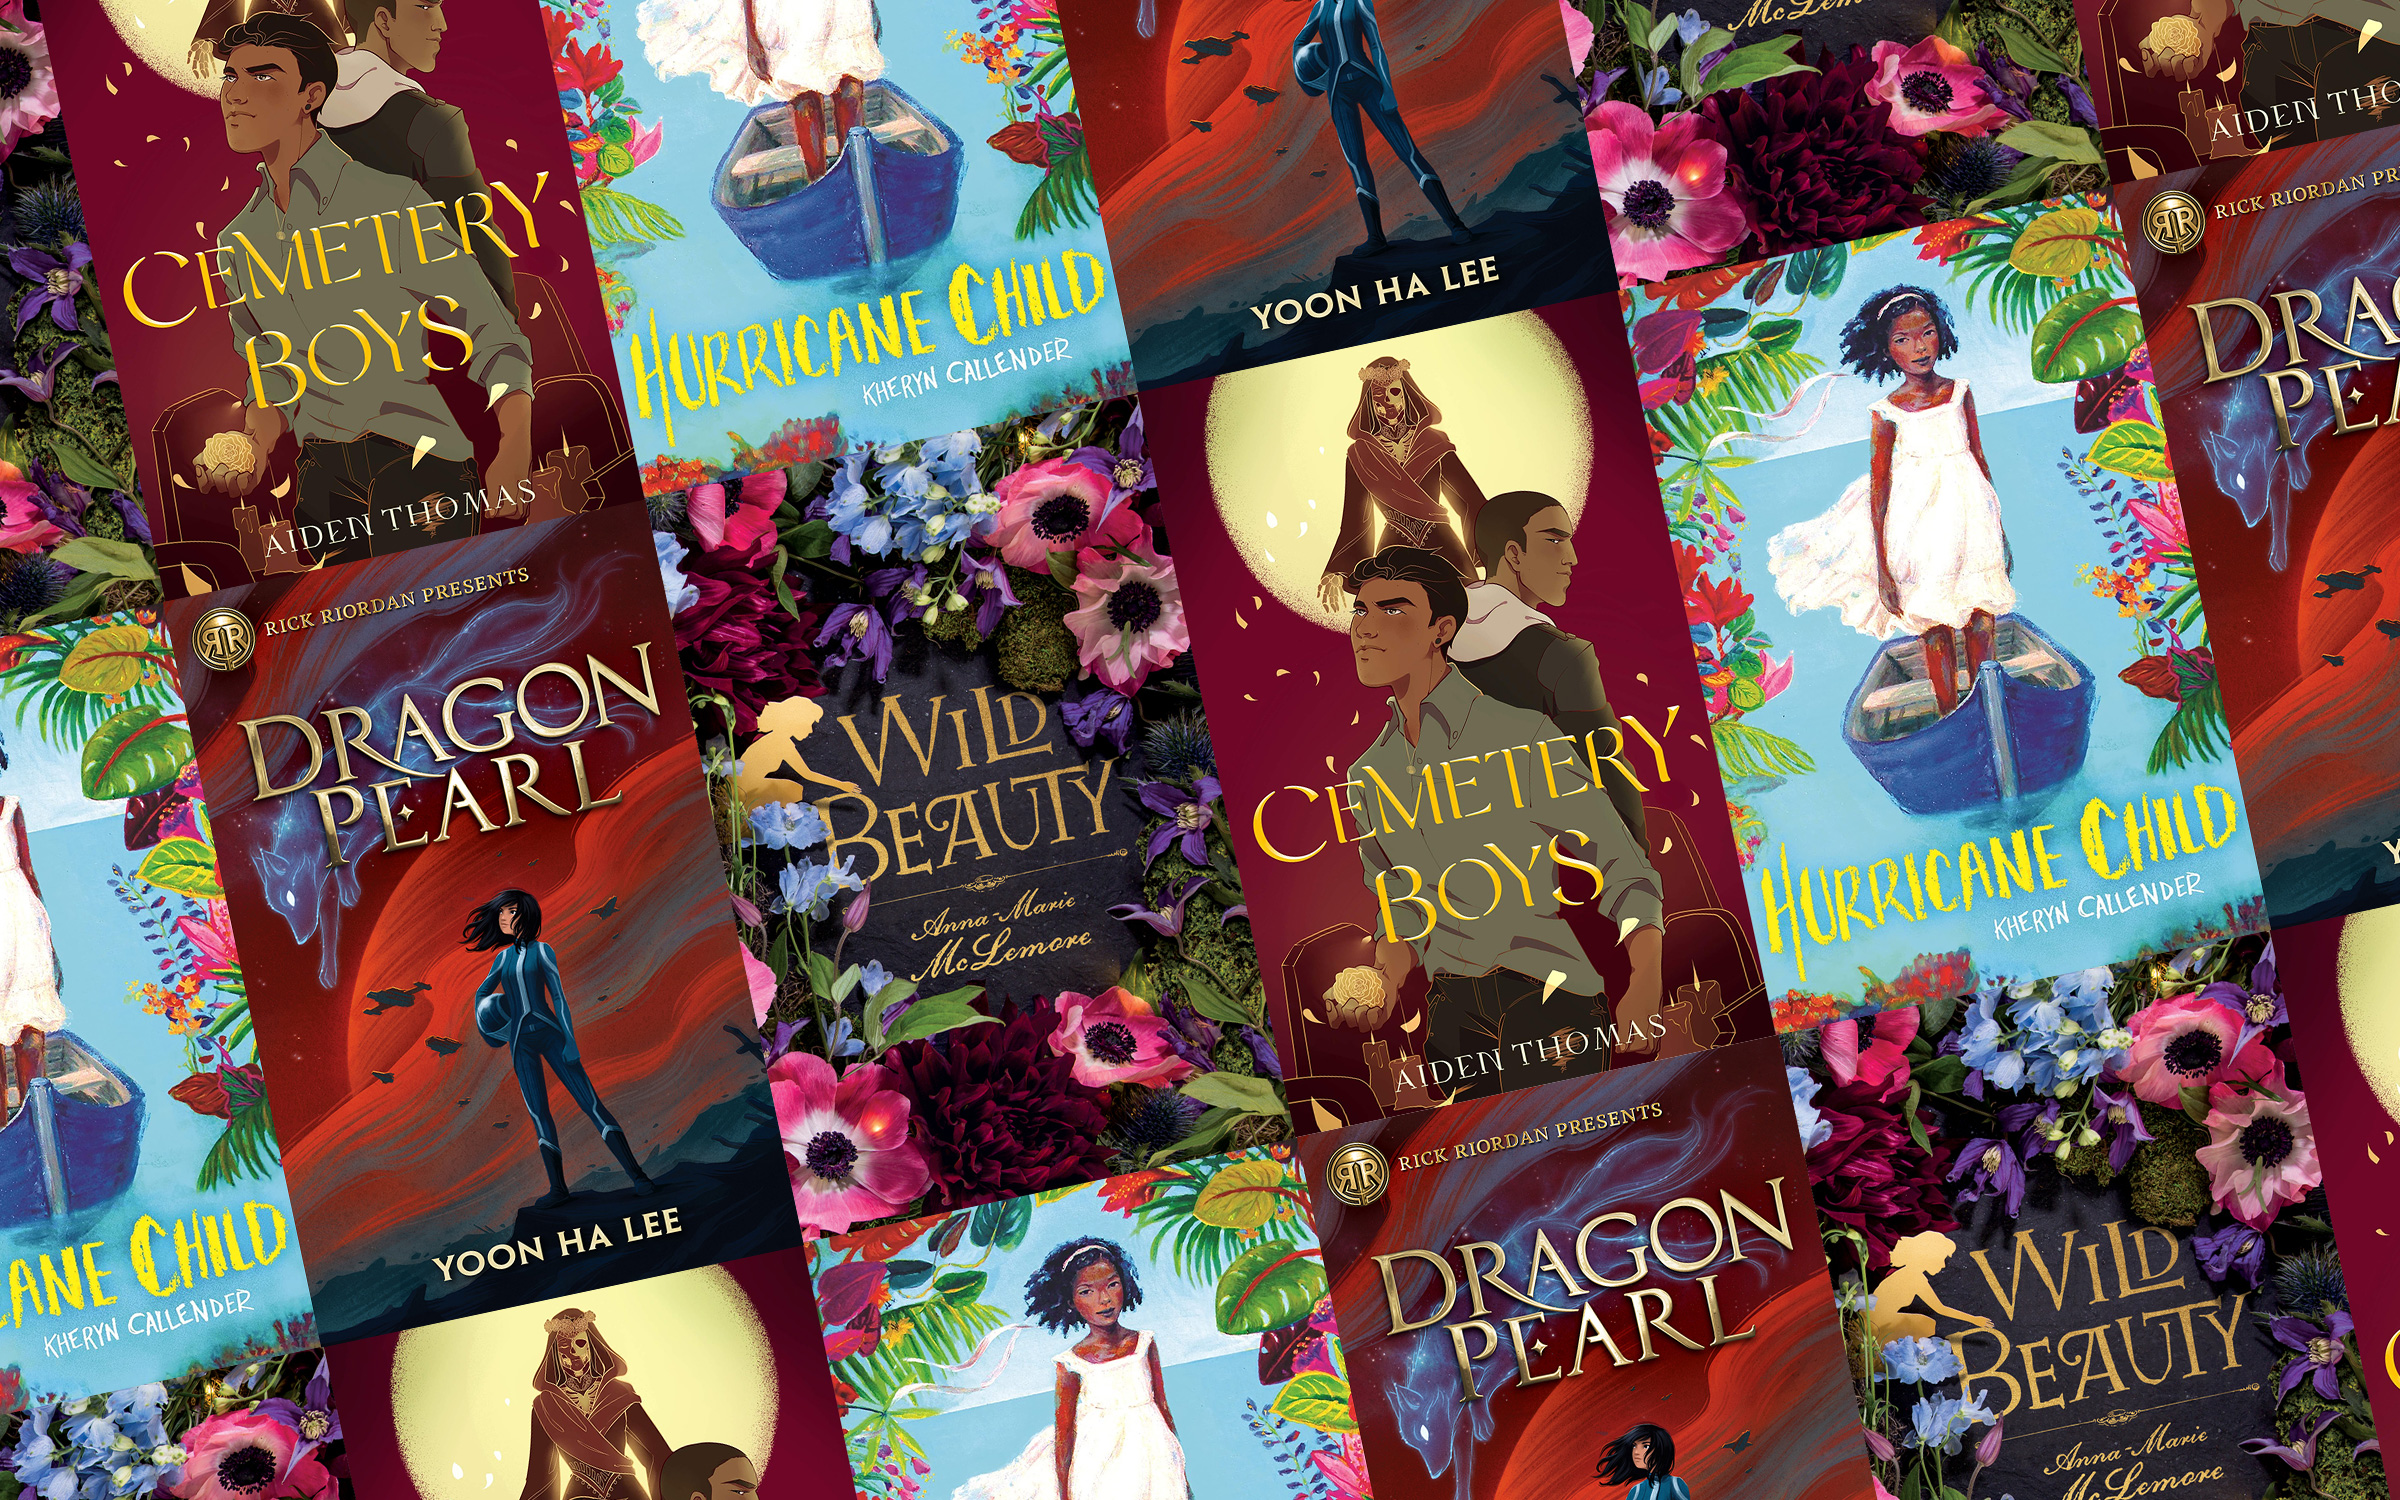 A collage of four books: Ninth House by Leigh Bardugo, Hurricane Child by Kacen Callender, Cemetery Boys by Aiden Thomas, Wild Beauty by Anna Marie McLemore.